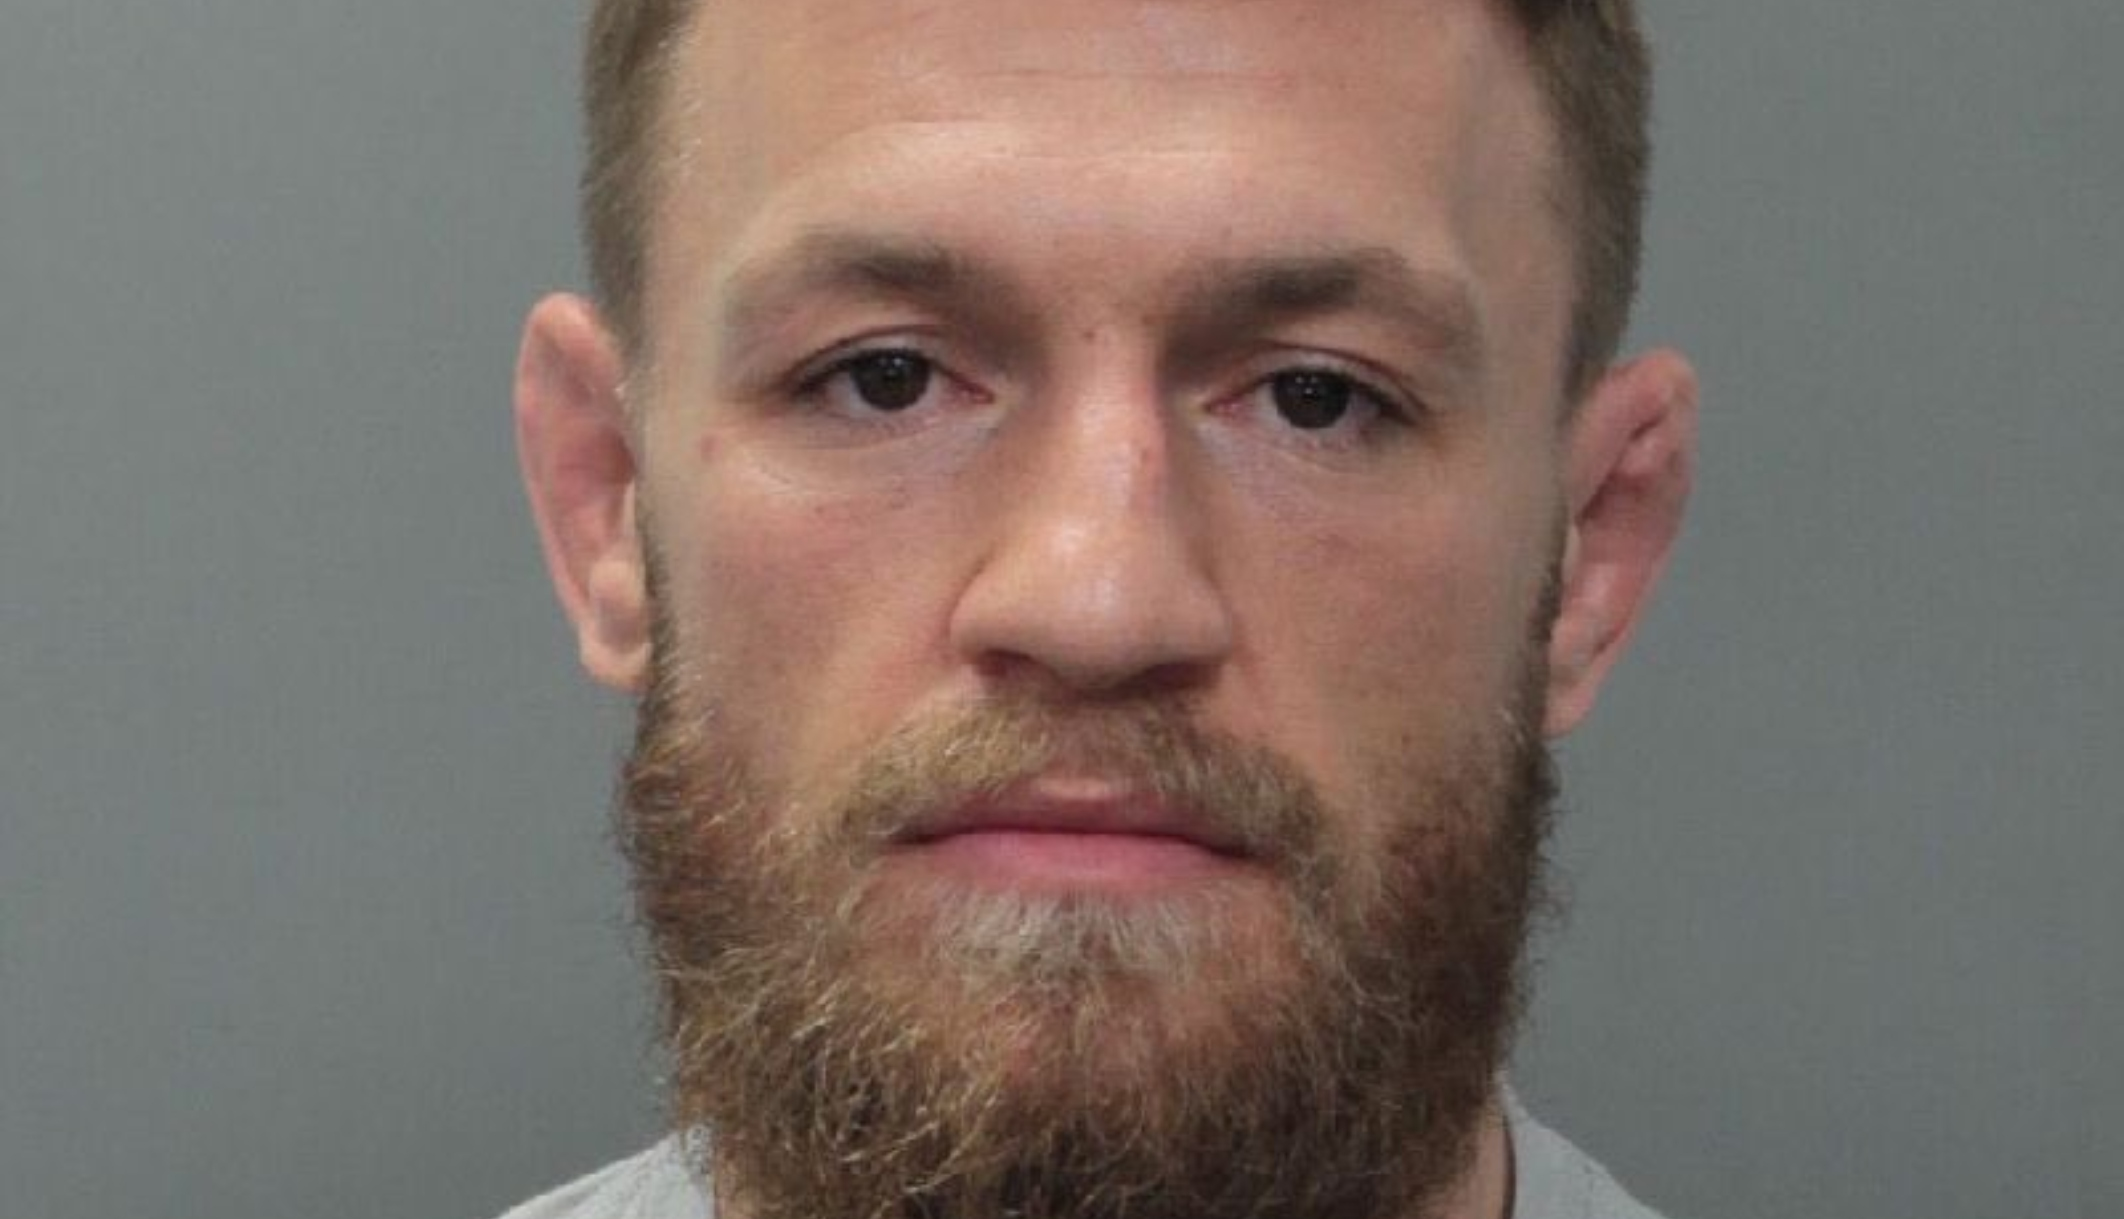 UFC star Conor McGregor seen here in his booking photo, taken on March 11, 2019